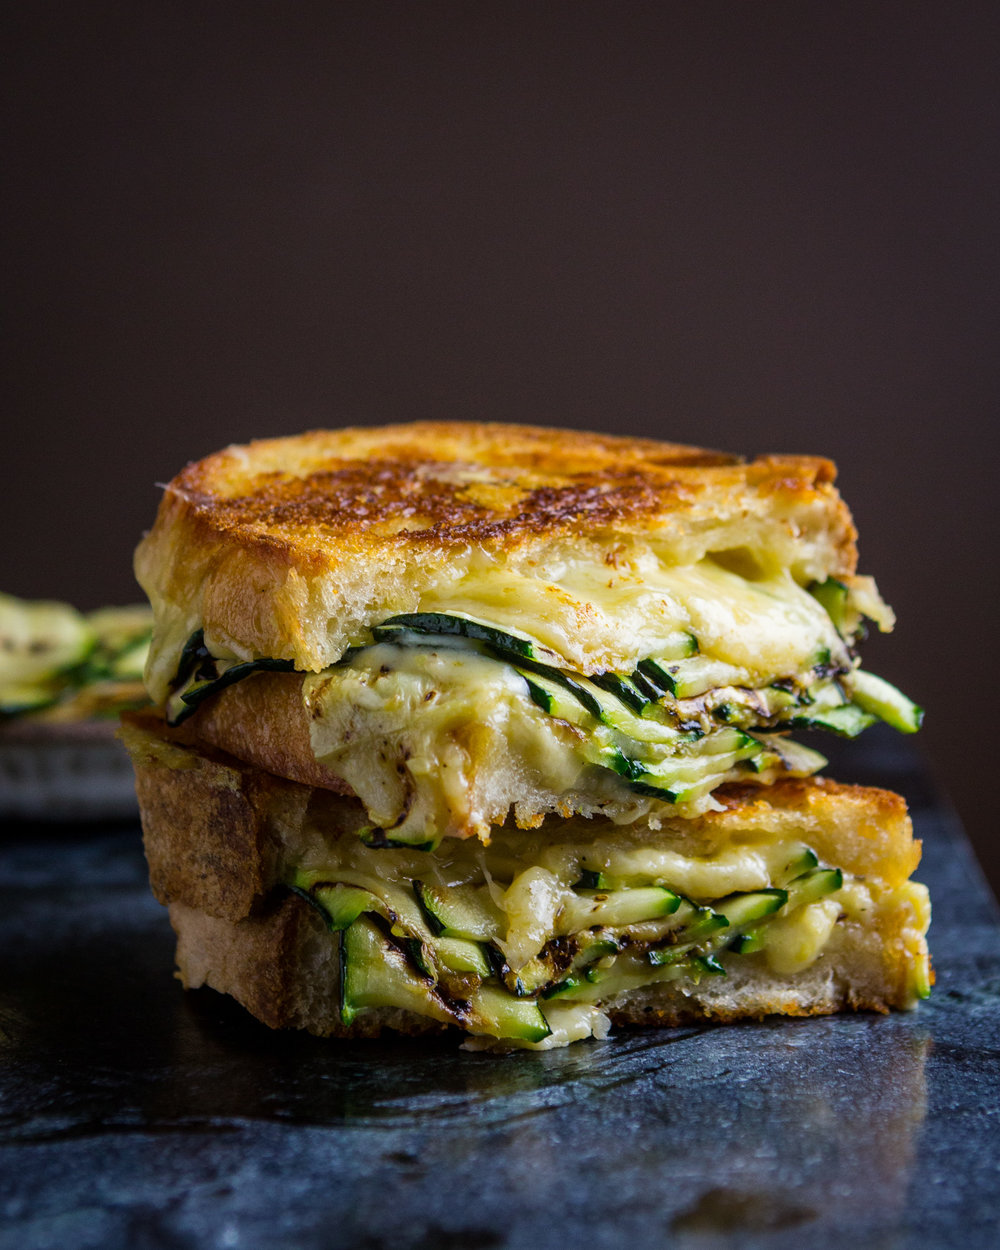 zucchini-grilled-cheese-sandwich-7.jpg